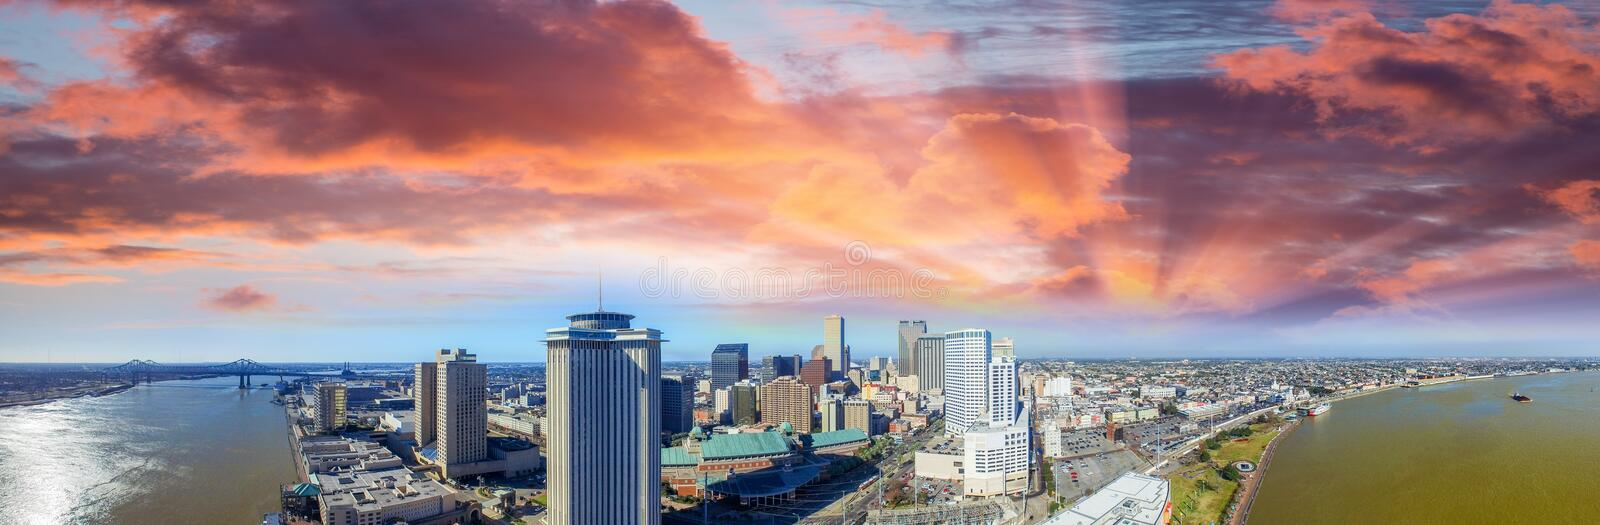 New Orleans, LA. Aerial panoramic view at sunset royalty free stock photo